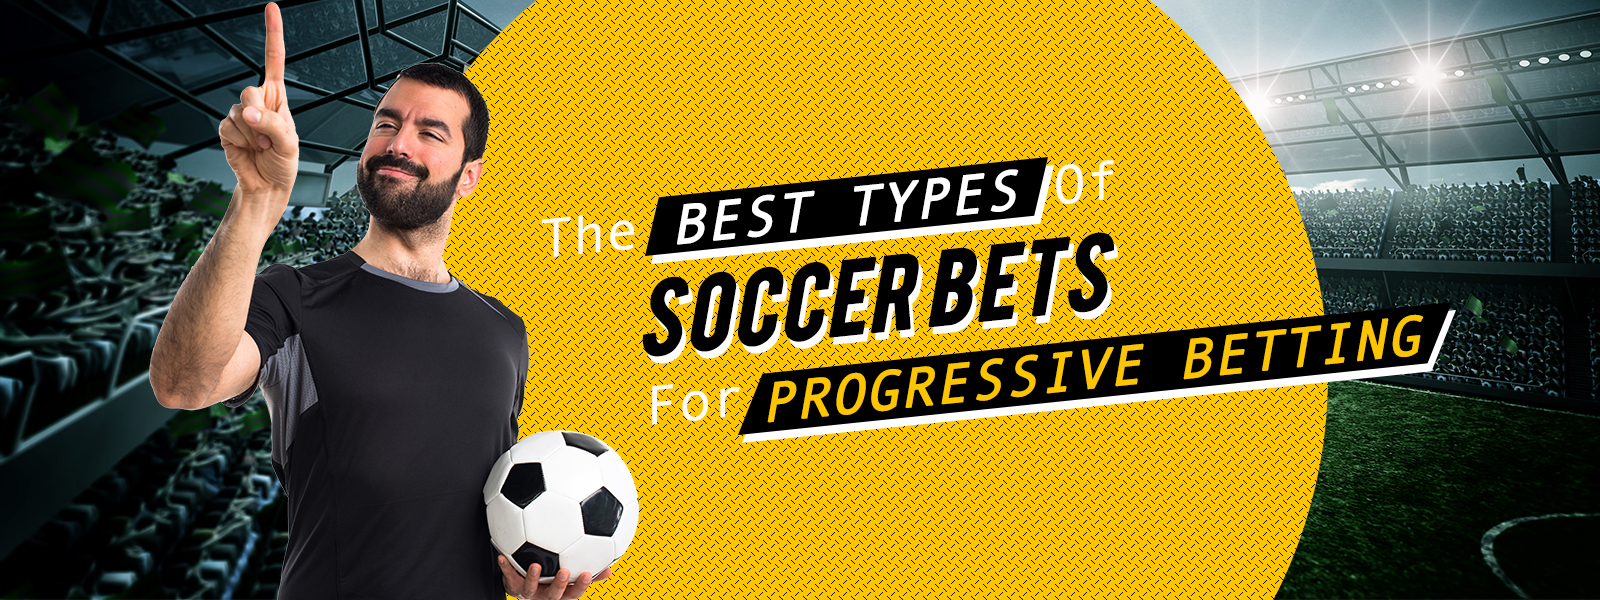 The Best Types Of Soccer Bets For Progressive Betting